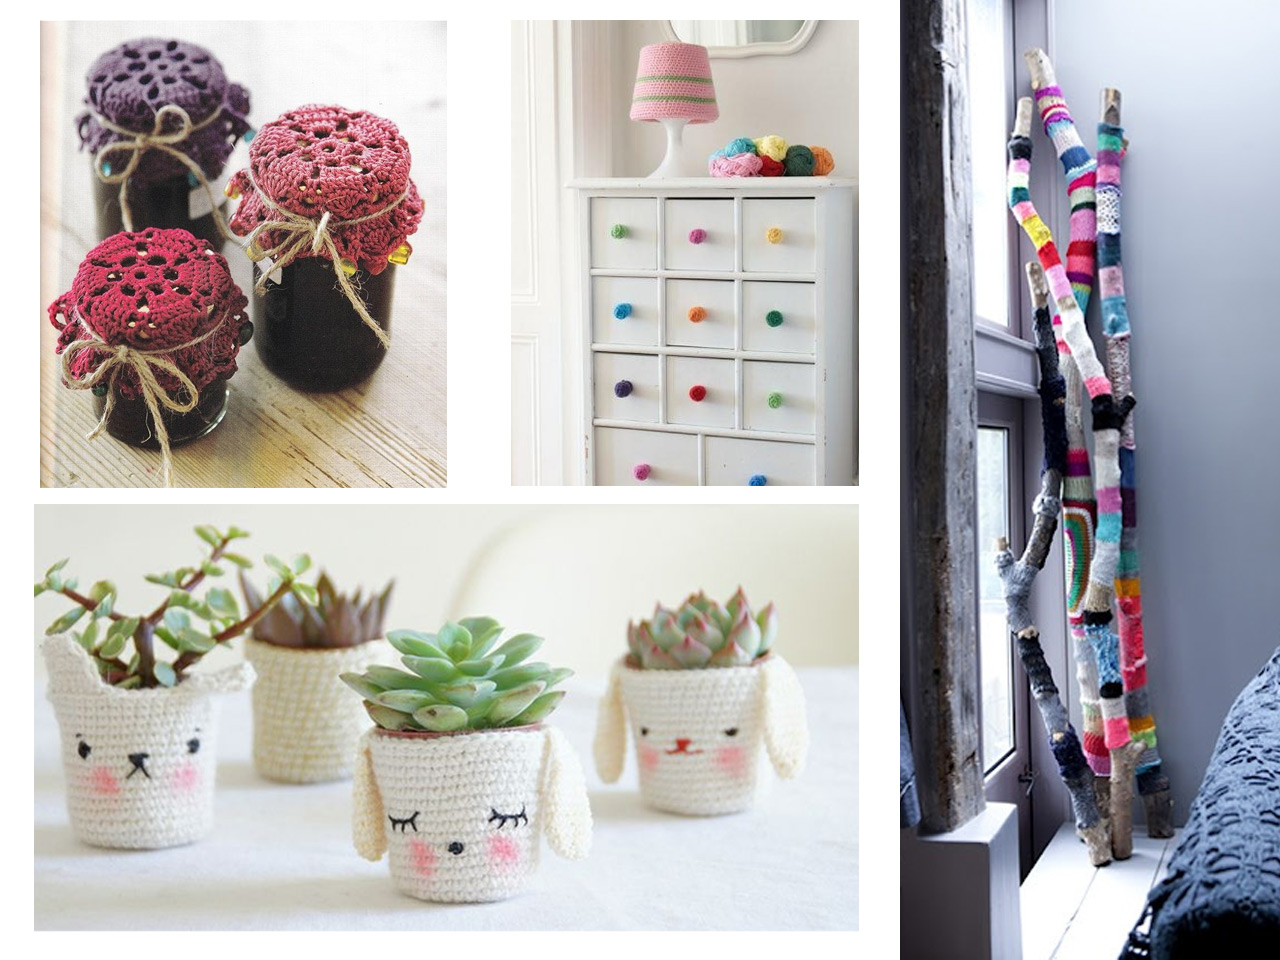 10 propuestas para decorar tu casa con crochet for Cosas para decorar la casa